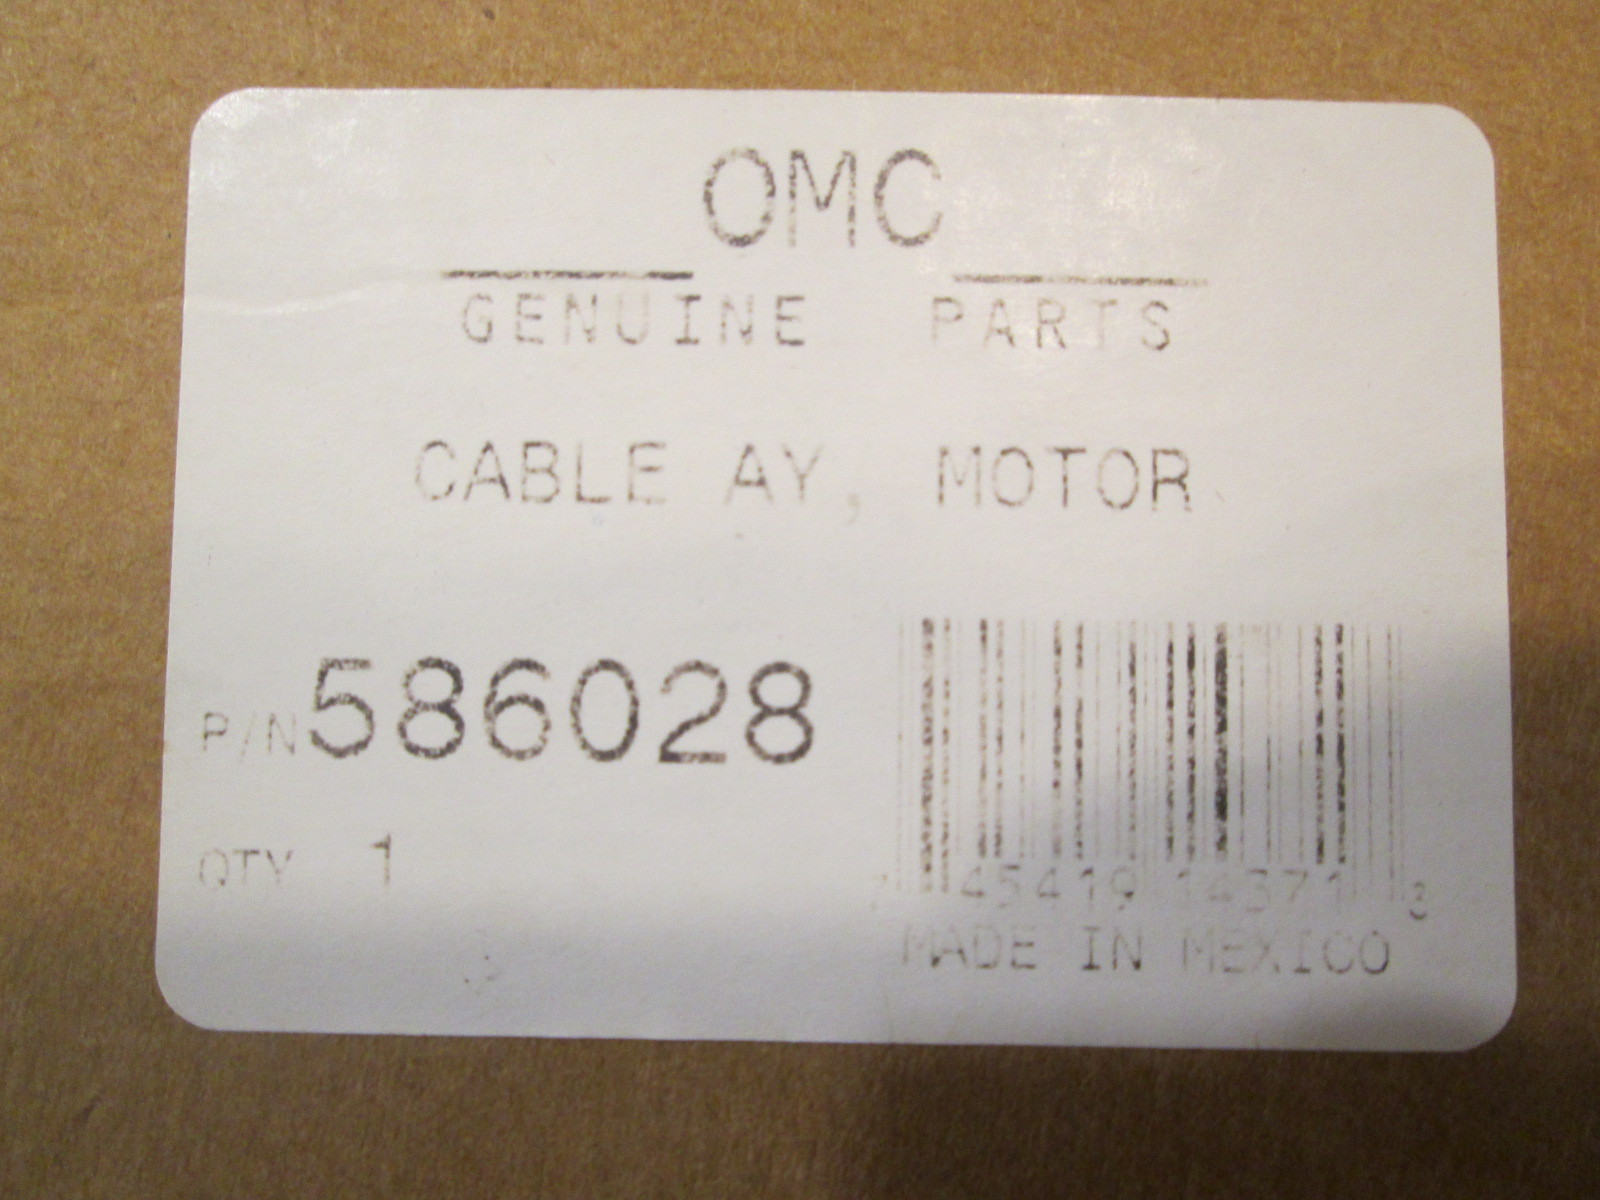 0586028 586028 OMC Evinrude Johnson 150-175 Hp Outboard Wire ... on johnson outboard manual, johnson outboard shifter, johnson outboard throttle cable, johnson outboard starter, johnson outboard fuel hose, johnson outboard engine paint, johnson outboard ignition coil, johnson outboard fuel lines, johnson outboard fuel pump kit, johnson outboard wiring diagram, johnson outboard wiring coil, johnson v4 90 hp outboard, johnson outboard mounting bracket, johnson outboard gauges, johnson outboard carburetor, johnson outboard rectifier, johnson outboard tach wiring, johnson outboard stator, johnson outboard fuel filter, johnson outboard control box,